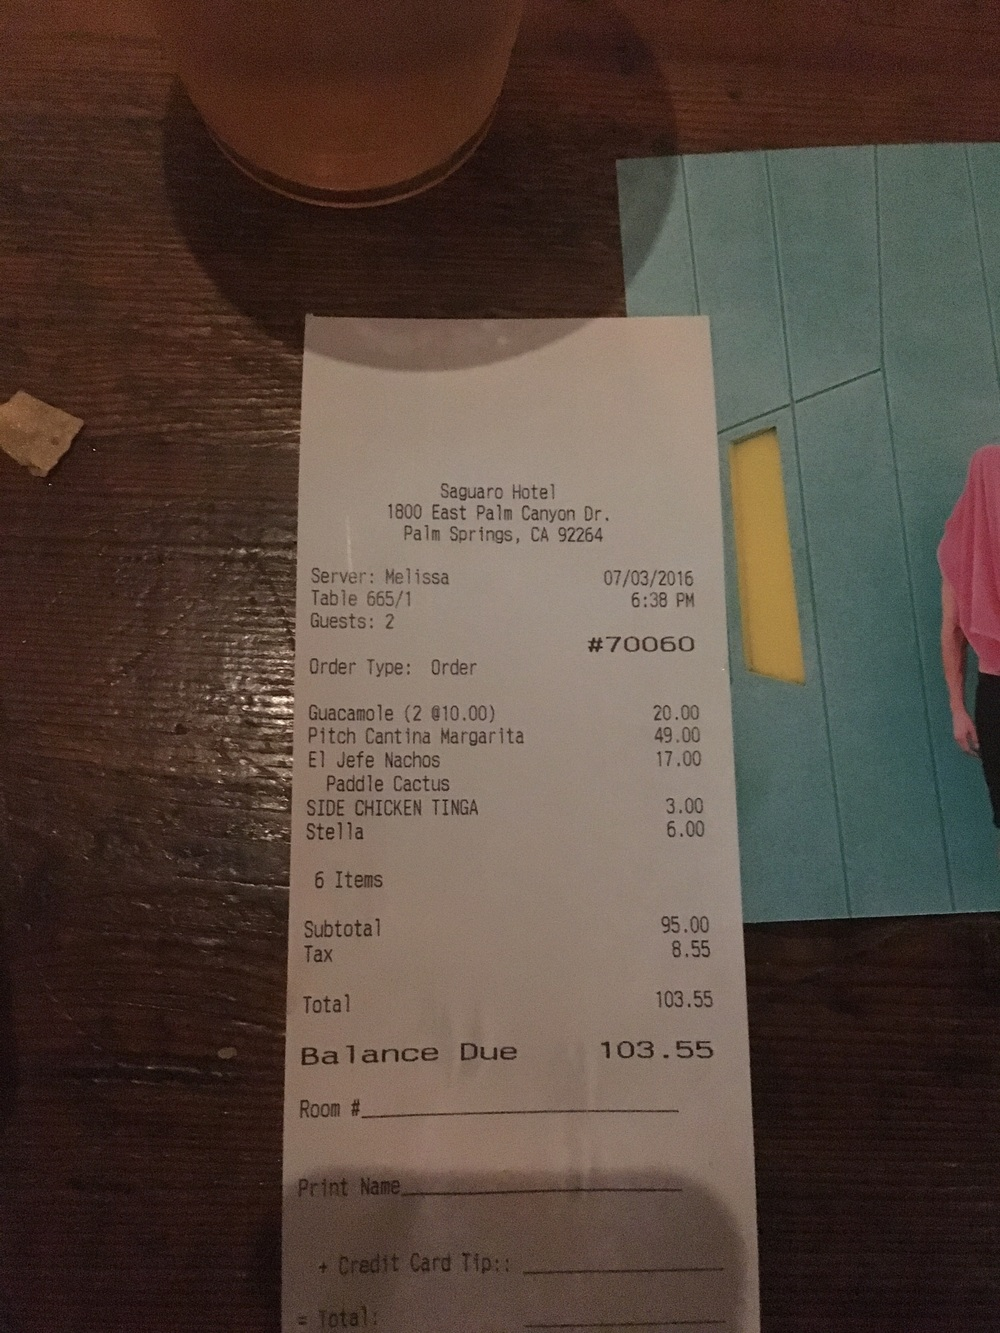 Our bill.  Melissa was a dope server though...